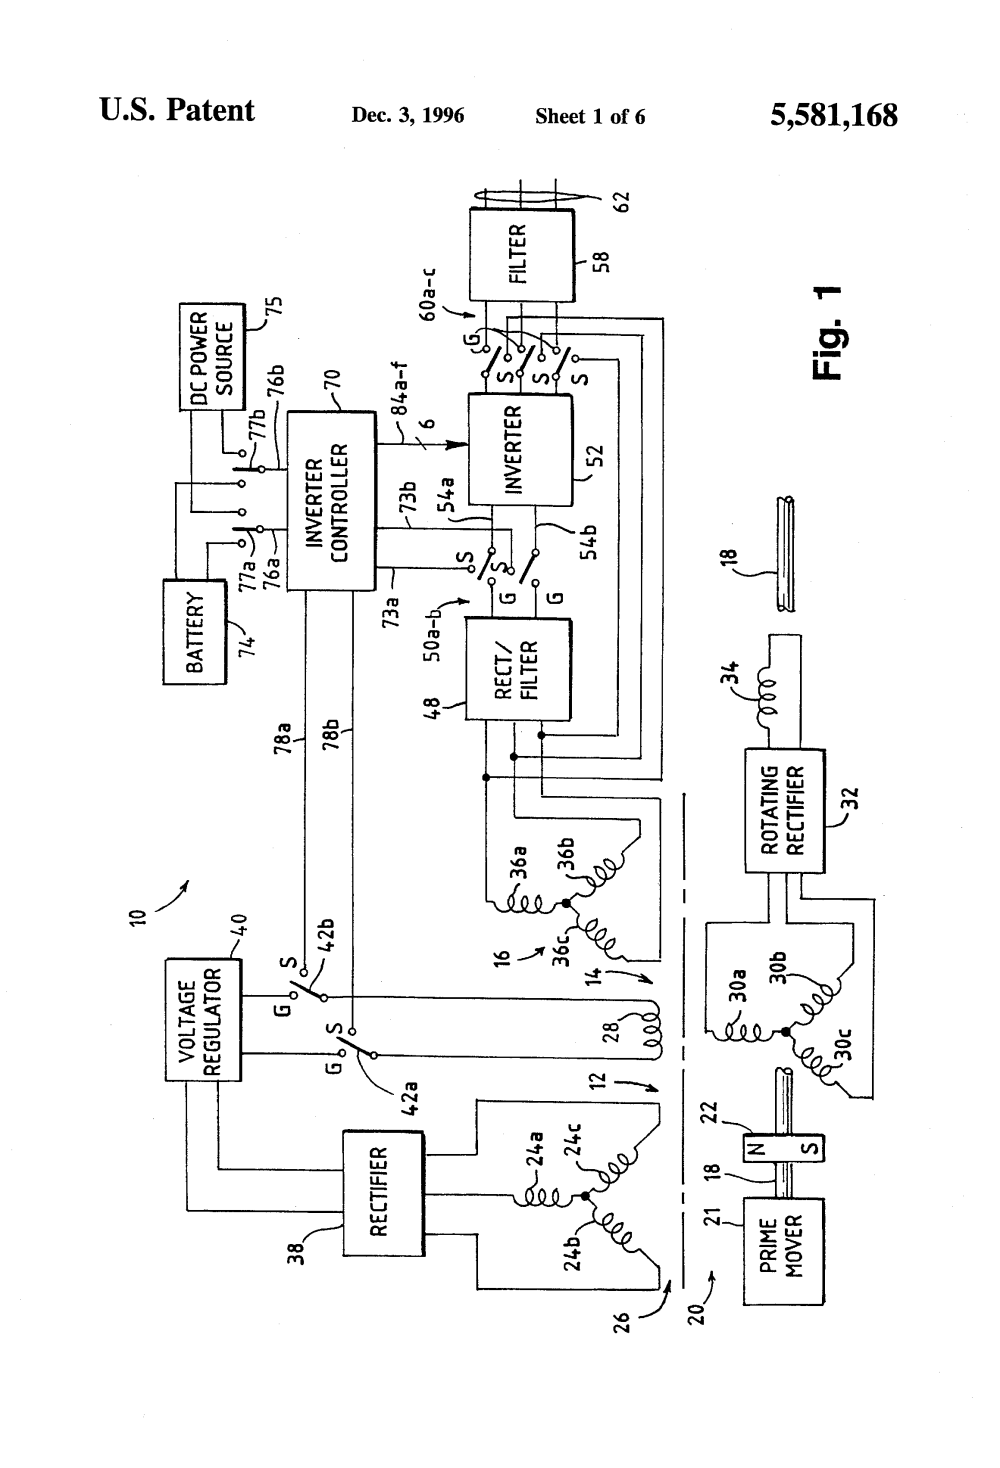 medium resolution of us5581168 2 patent us5581168 starter generator system with dc link current hitachi starter hitachi starter generator wiring diagram